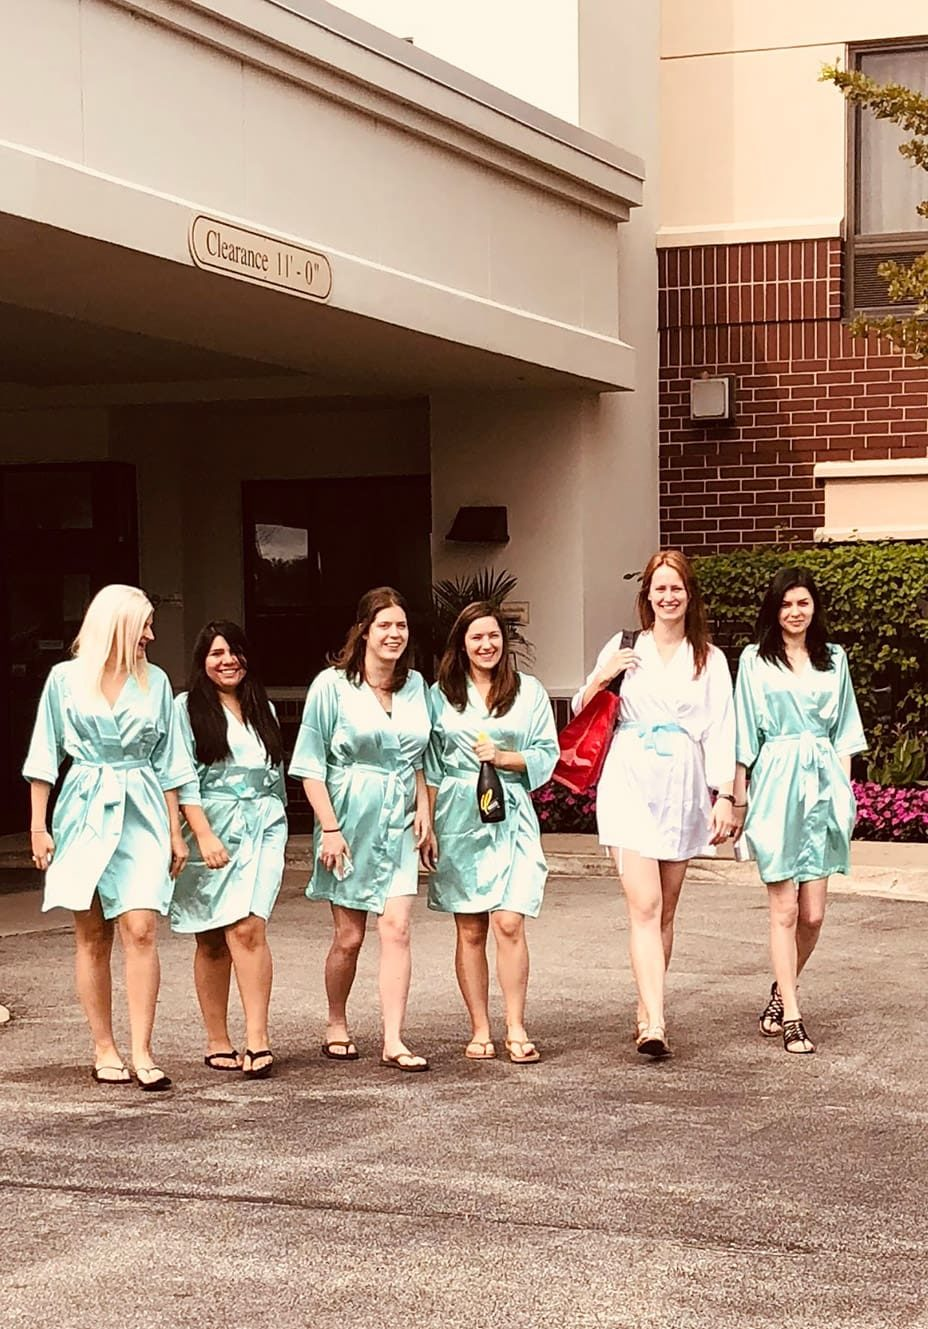 wedding_lincolnshire_teal_ladies_bridal_party